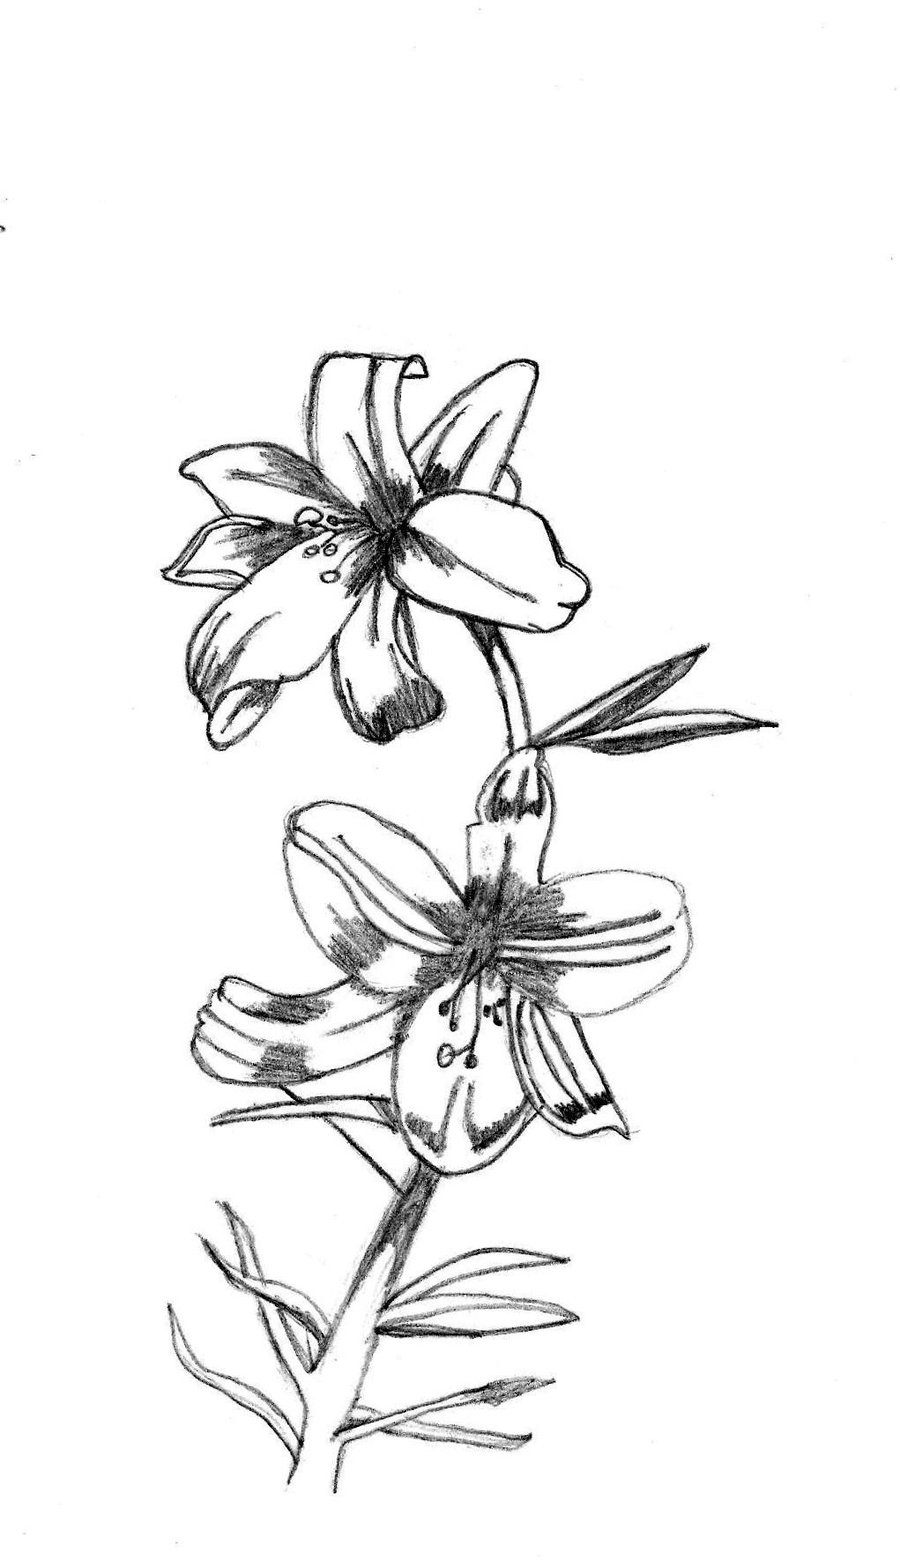 Flowers drawing pictures at getdrawings free for personal use 900x1560 my friends flower drawing by cuernosbeste mightylinksfo